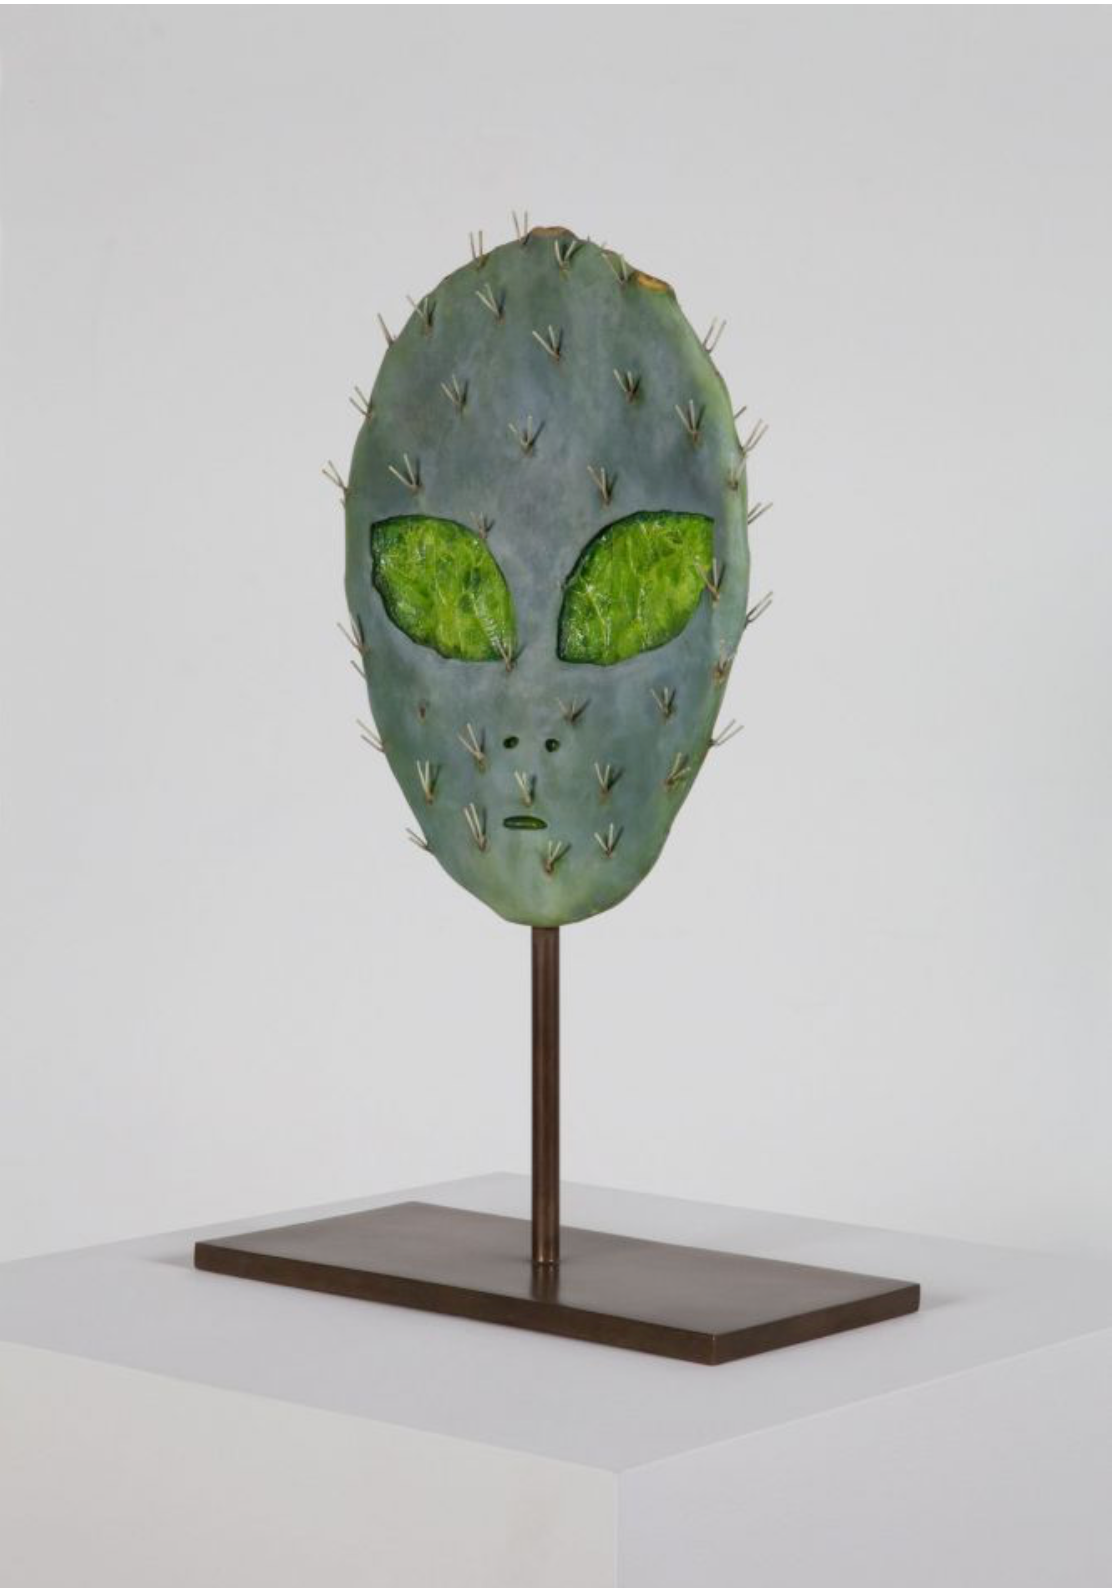 Matt Johnson, Alien Cactus, 2015